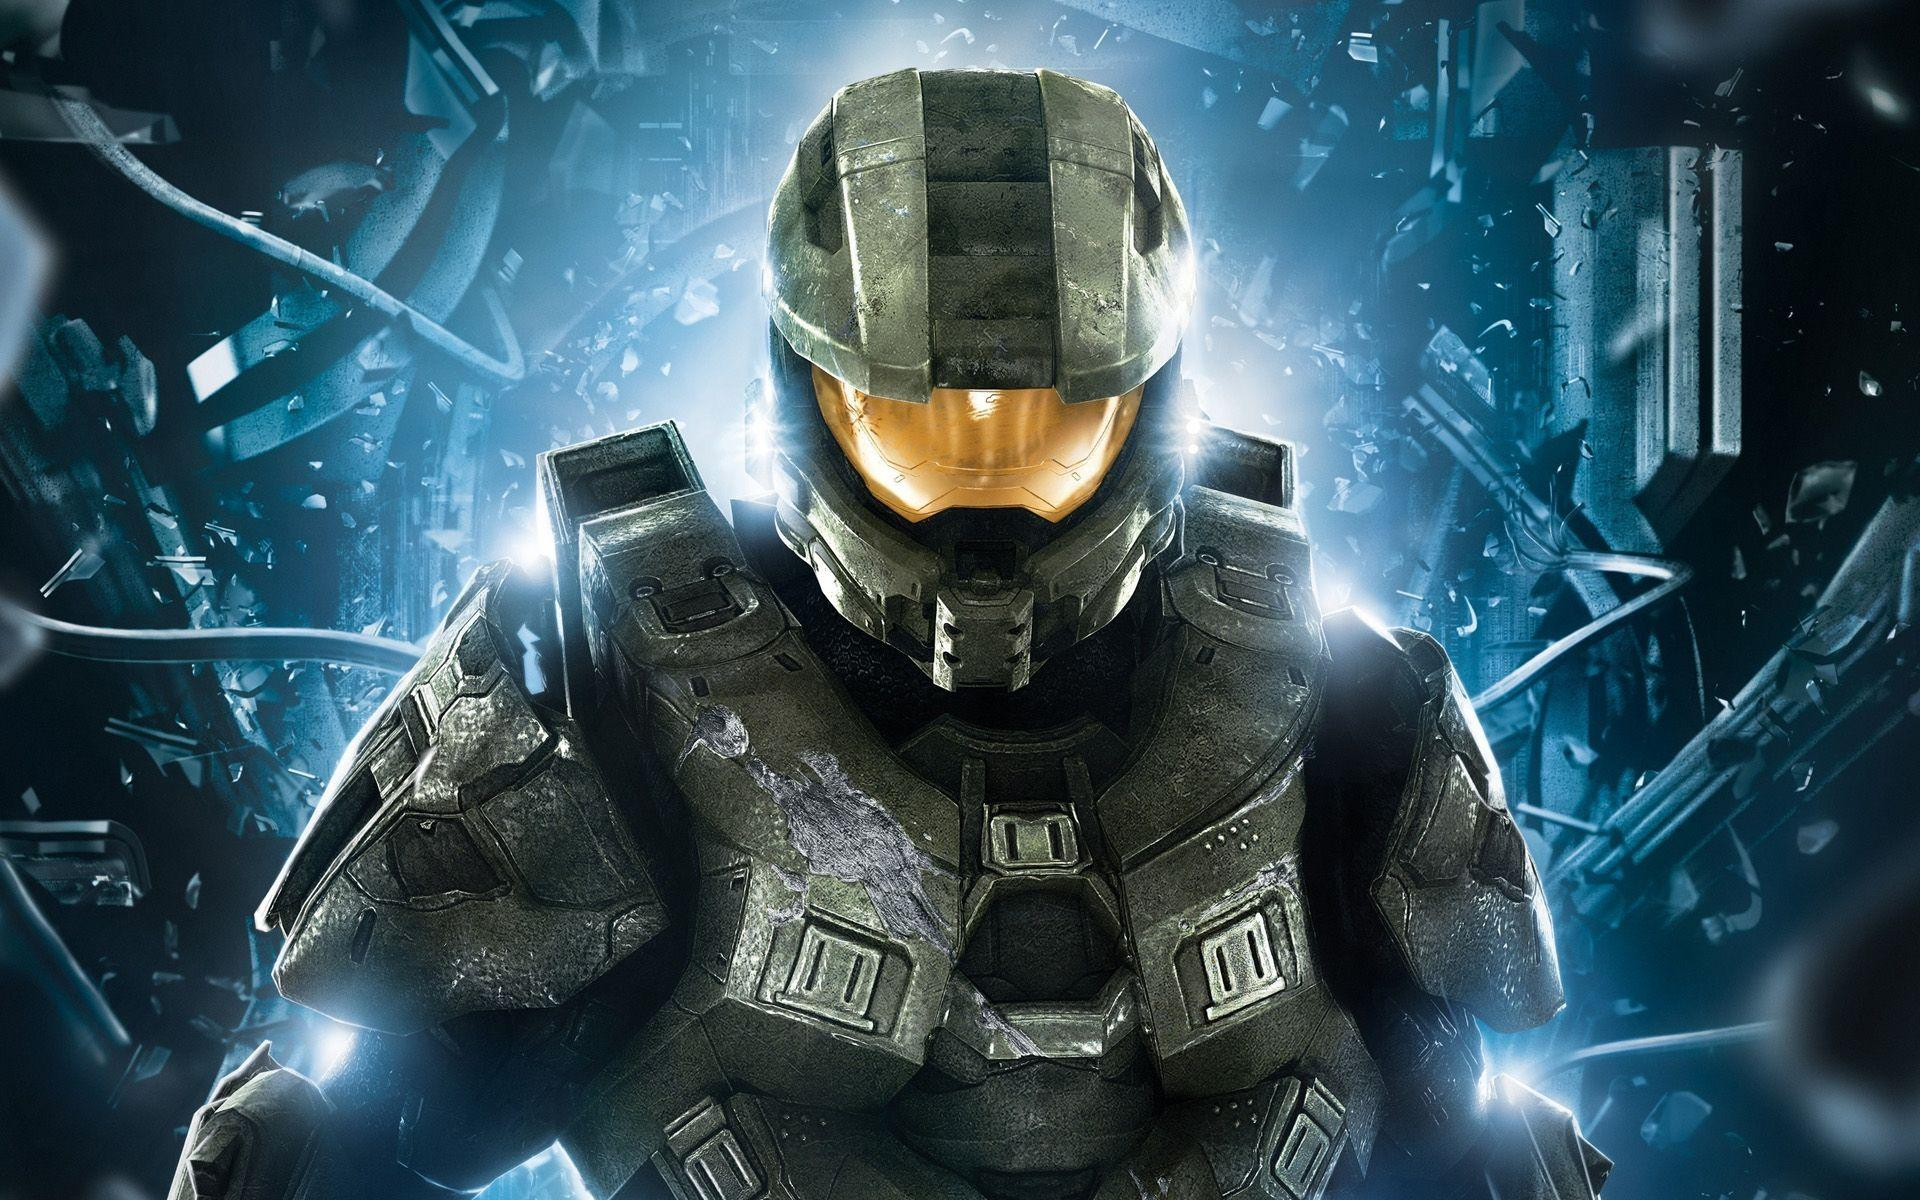 Master Chief Halo 4 Wallpapers Wallpaper Cave